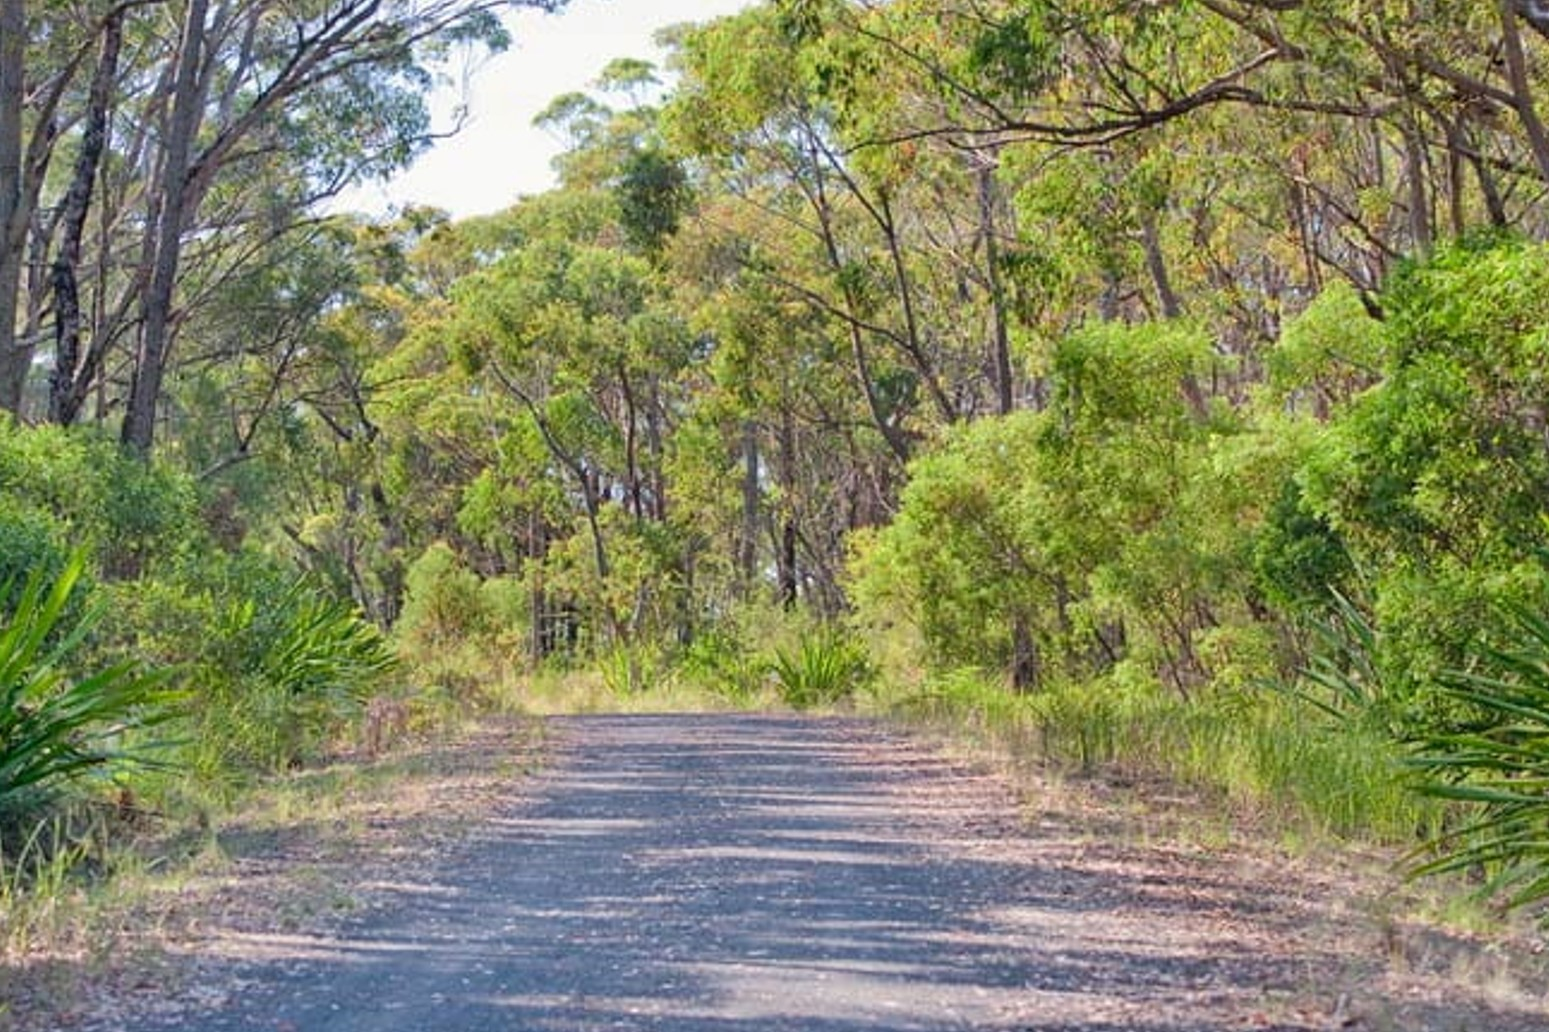 Bike Ride & Picnic in the Dharawal National Park